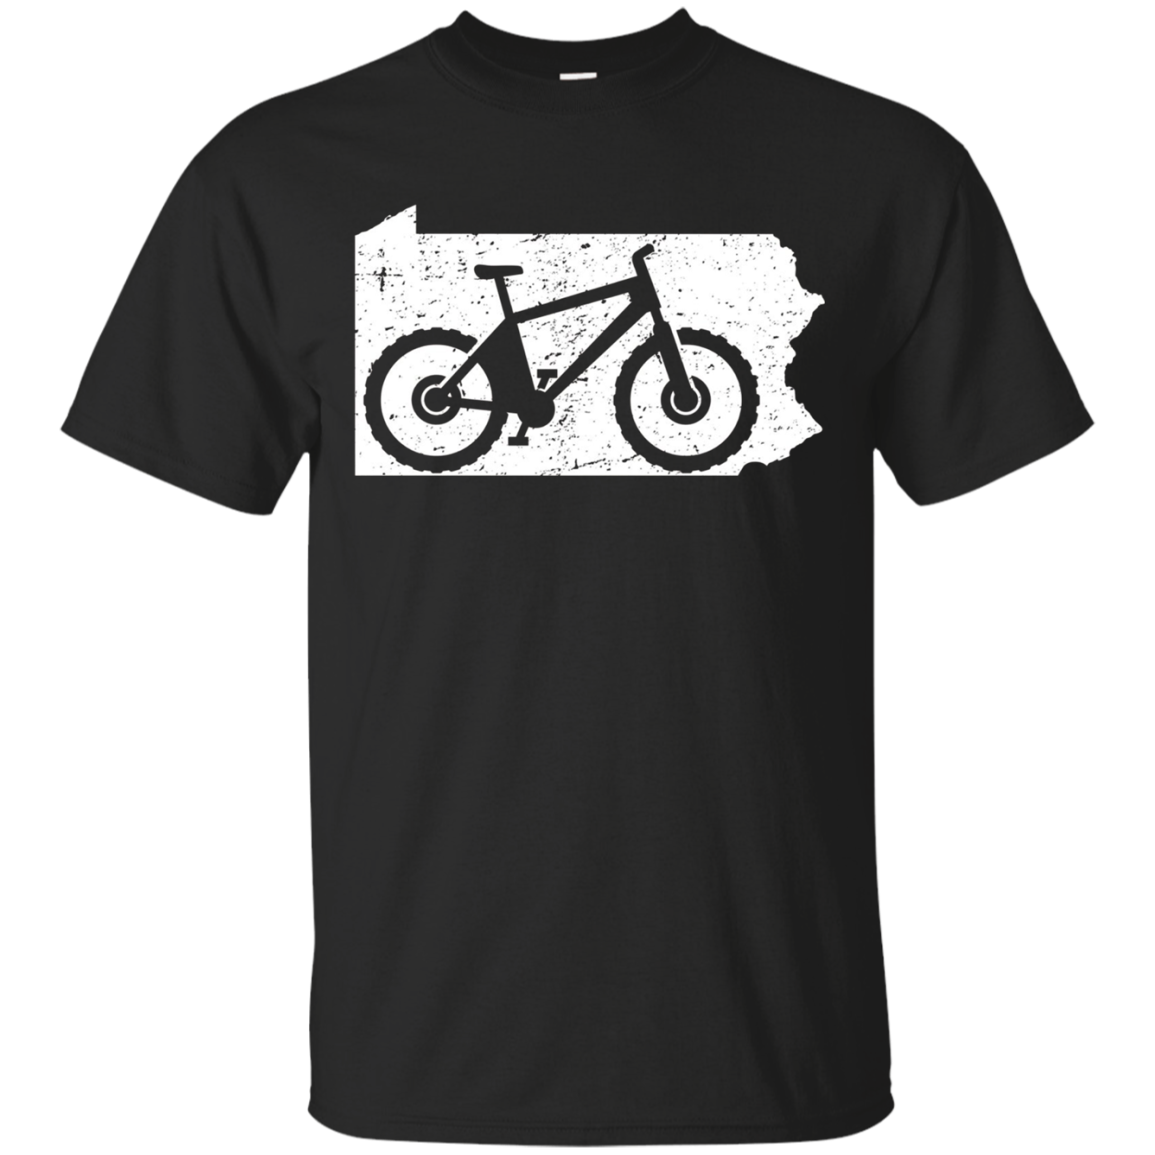 Pennsylvania Mountain Bike Shirt: Biking Cycling MTB Biker